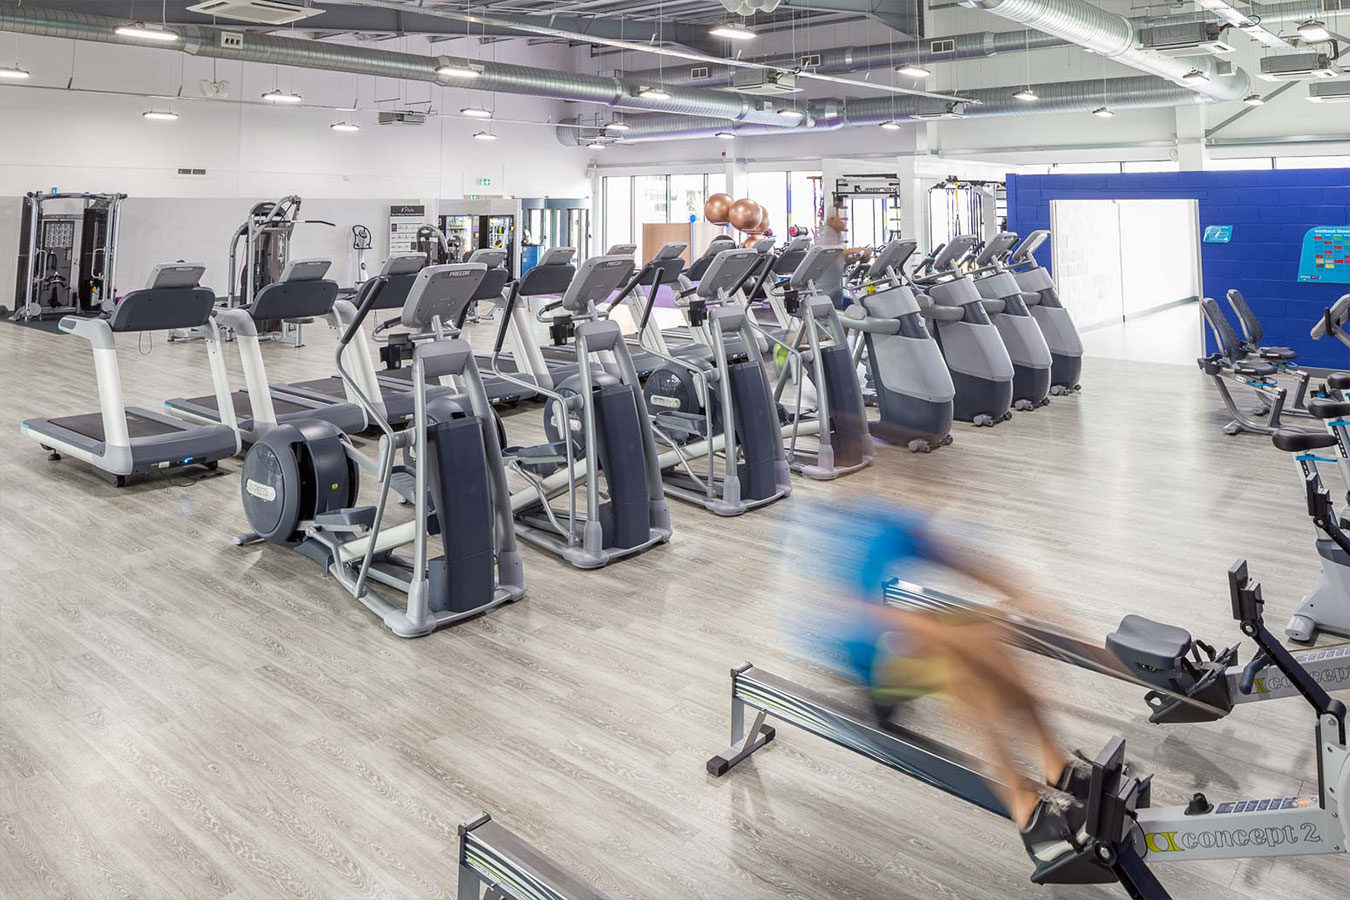 places-gym-leyland-interior-by-armex-systems-3